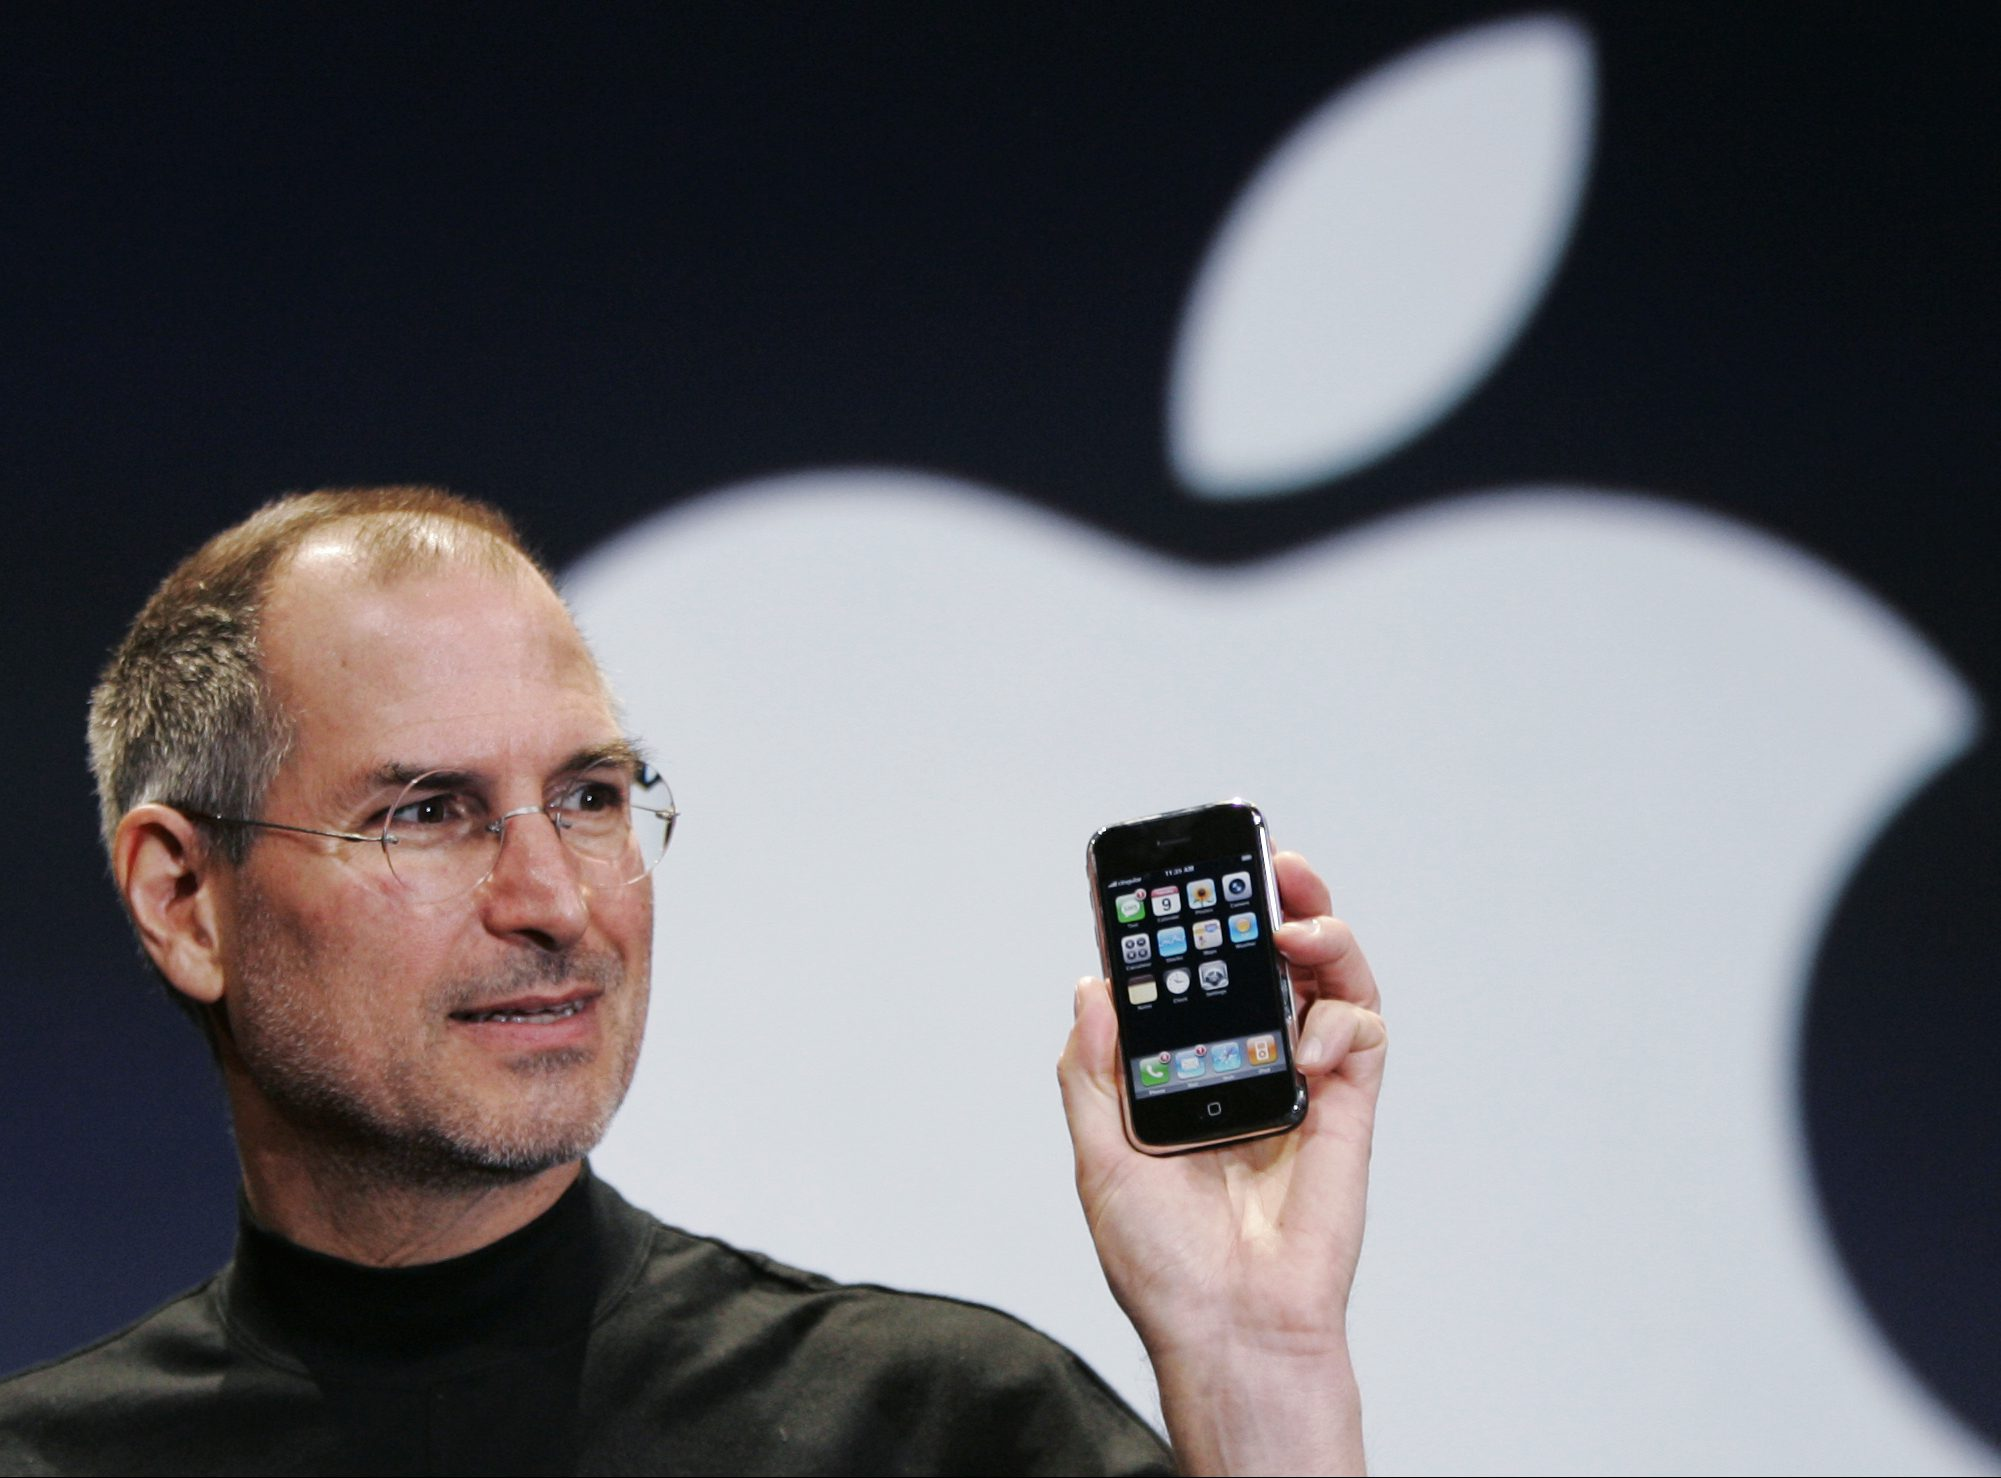 Apple CEO Steve Jobs holds up an Apple iPhone at the MacWorld Conference in San Francisco, in this Jan. 9, 2007 file photo. The hype around Apple Inc.'s upcoming iPhone is abundantly clear. But how the iPhone will leave its historical mark after June 29 is yet to be seen.